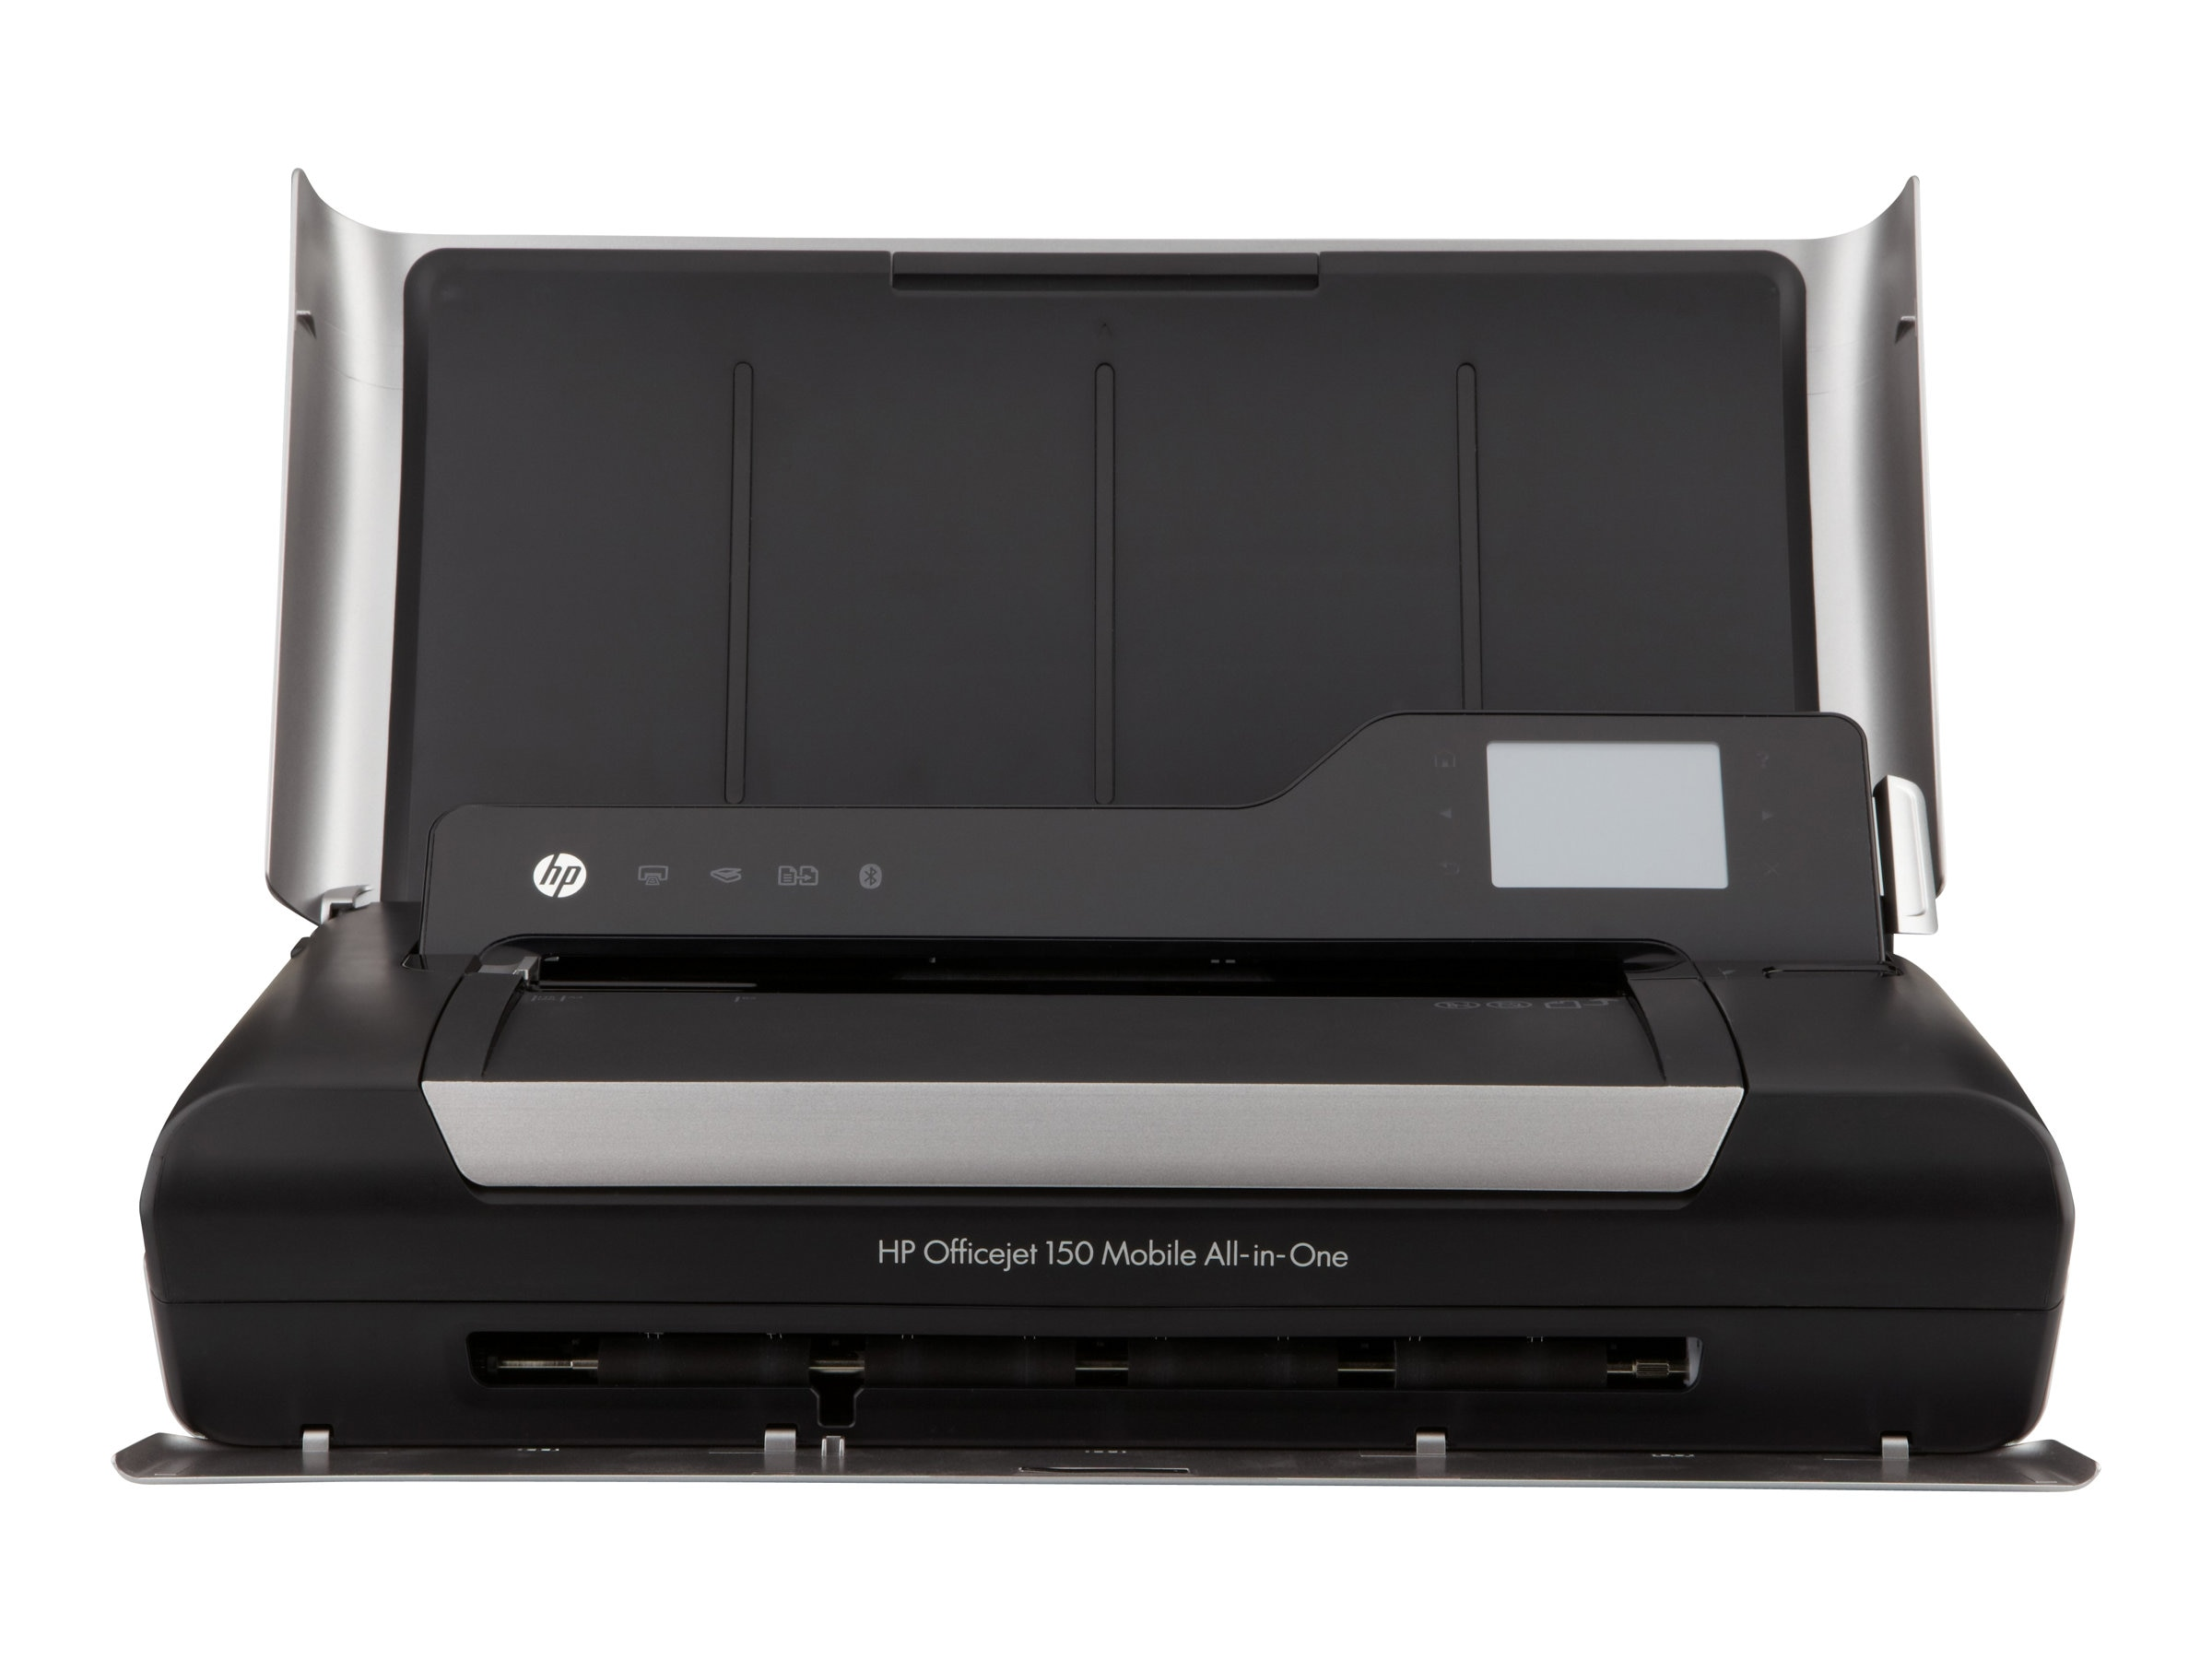 HP Officejet 150 Mobile All-In-One Printer ($399.95 - $70 Instant Rebate = $329.95 Expires 05 14), CN550A#B1H, 13807250, MultiFunction - Ink-Jet